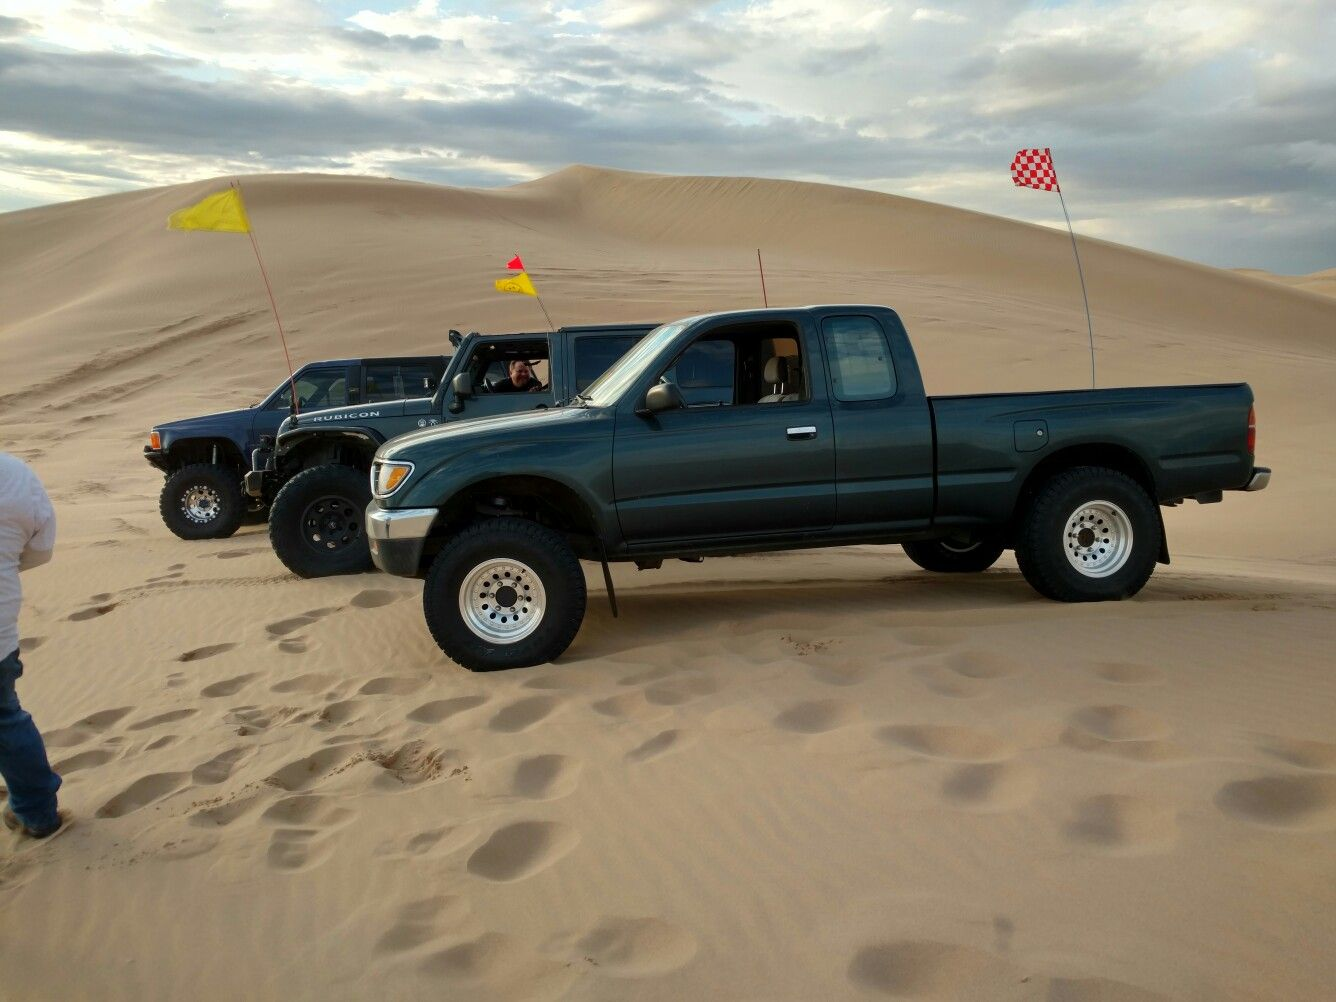 1996 toyota tacoma 4x4 in the sand dunes glamis california [ 1336 x 1002 Pixel ]